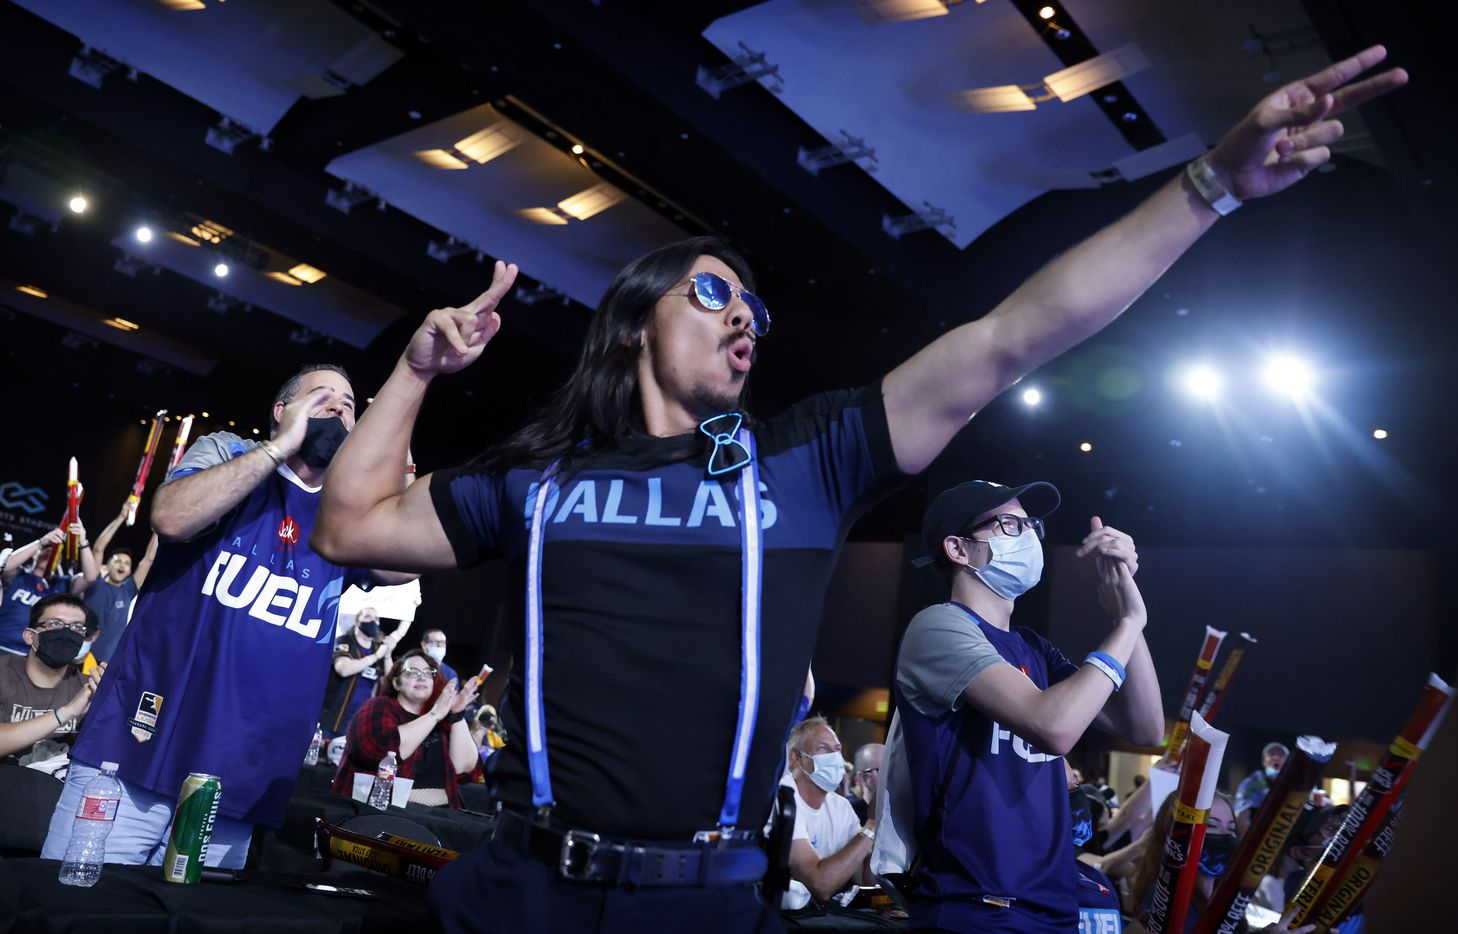 Dallas Fuel fans cheer player Sp9rk1e at the completion of his live winning interview. The Fuel defeated the Houston Outlaws in their Overwatch League match at Esports Stadium Arlington Friday, July 9, 2021. They won The Battle for Texas, 3-0. It was the first in-person live competition for fans in over a year. Houston competed from their hometown. (Tom Fox/The Dallas Morning News)